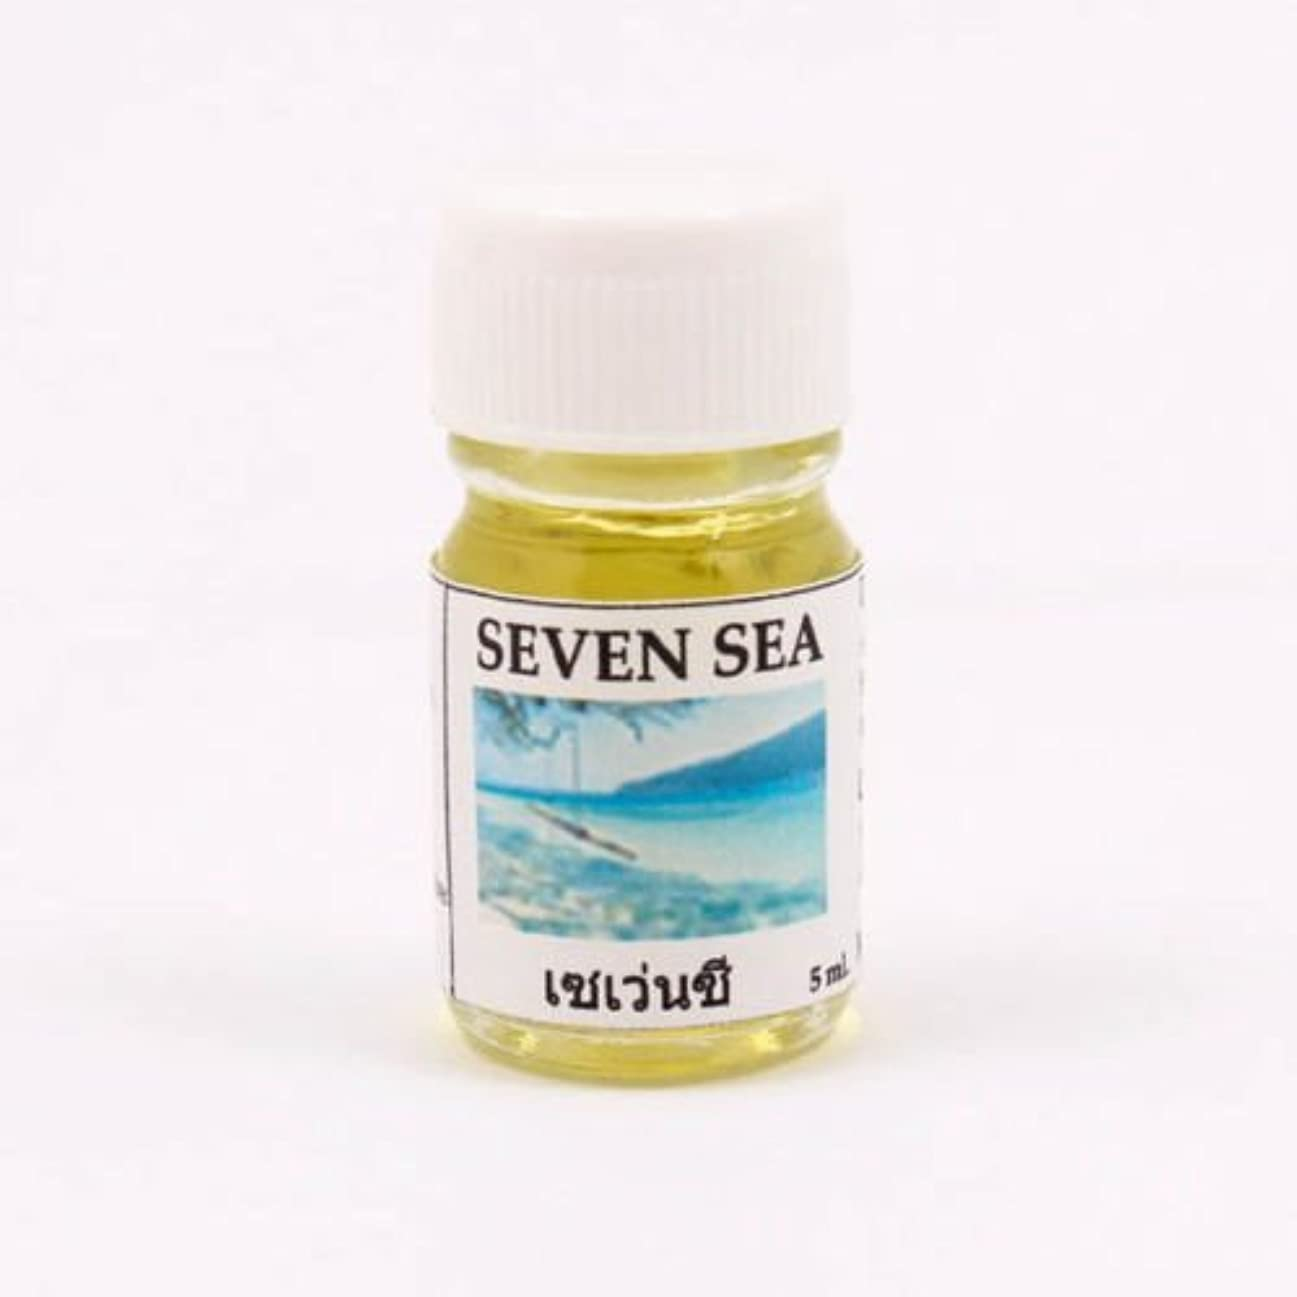 質素な異議ラフ睡眠6X Seven Sea Aroma Fragrance Essential Oil 5ML. cc Diffuser Burner Therapy